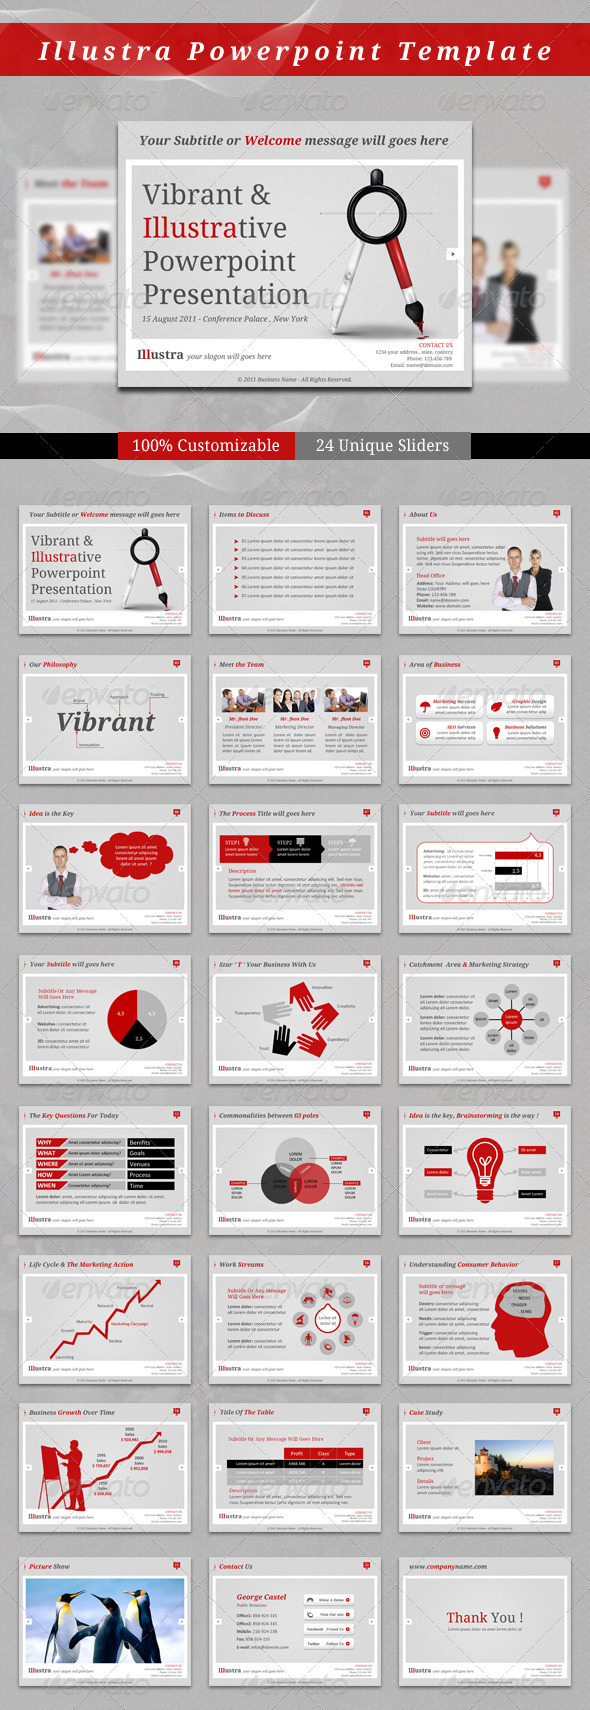 GraphicRiver Illustra PowerPoint Template 407166